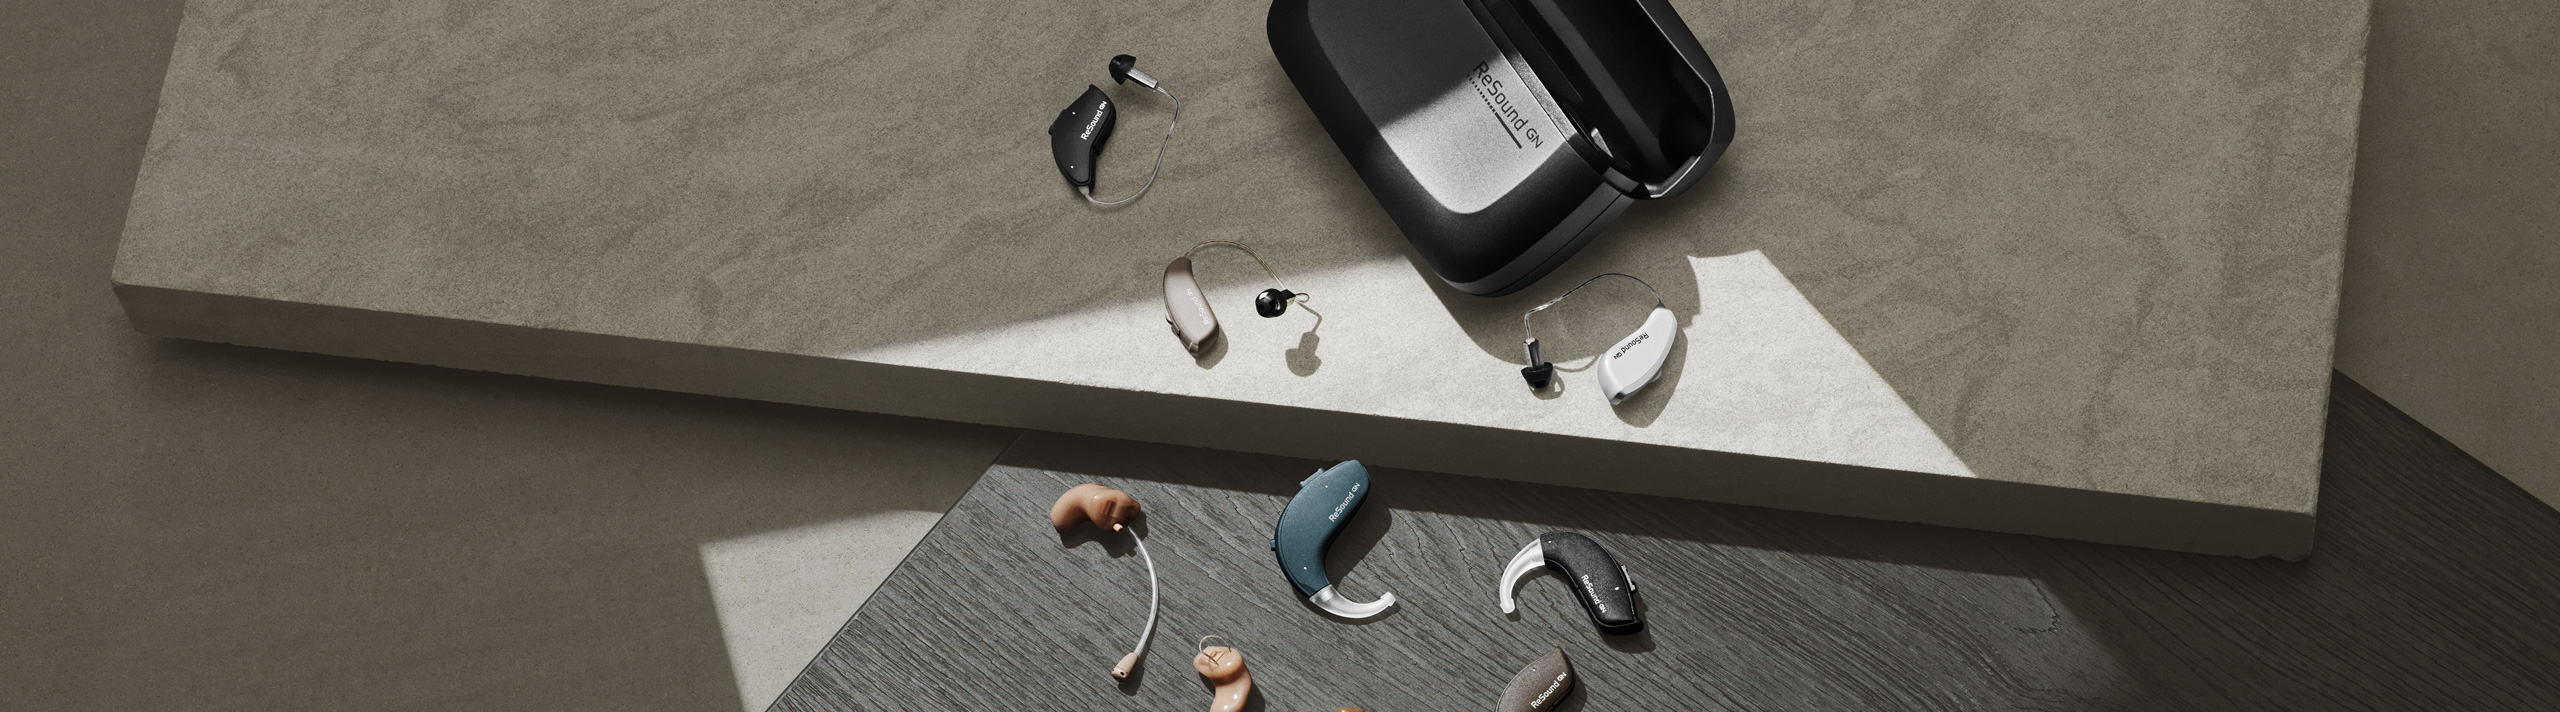 GN Hearing launches multiple new ReSound hearing solutions